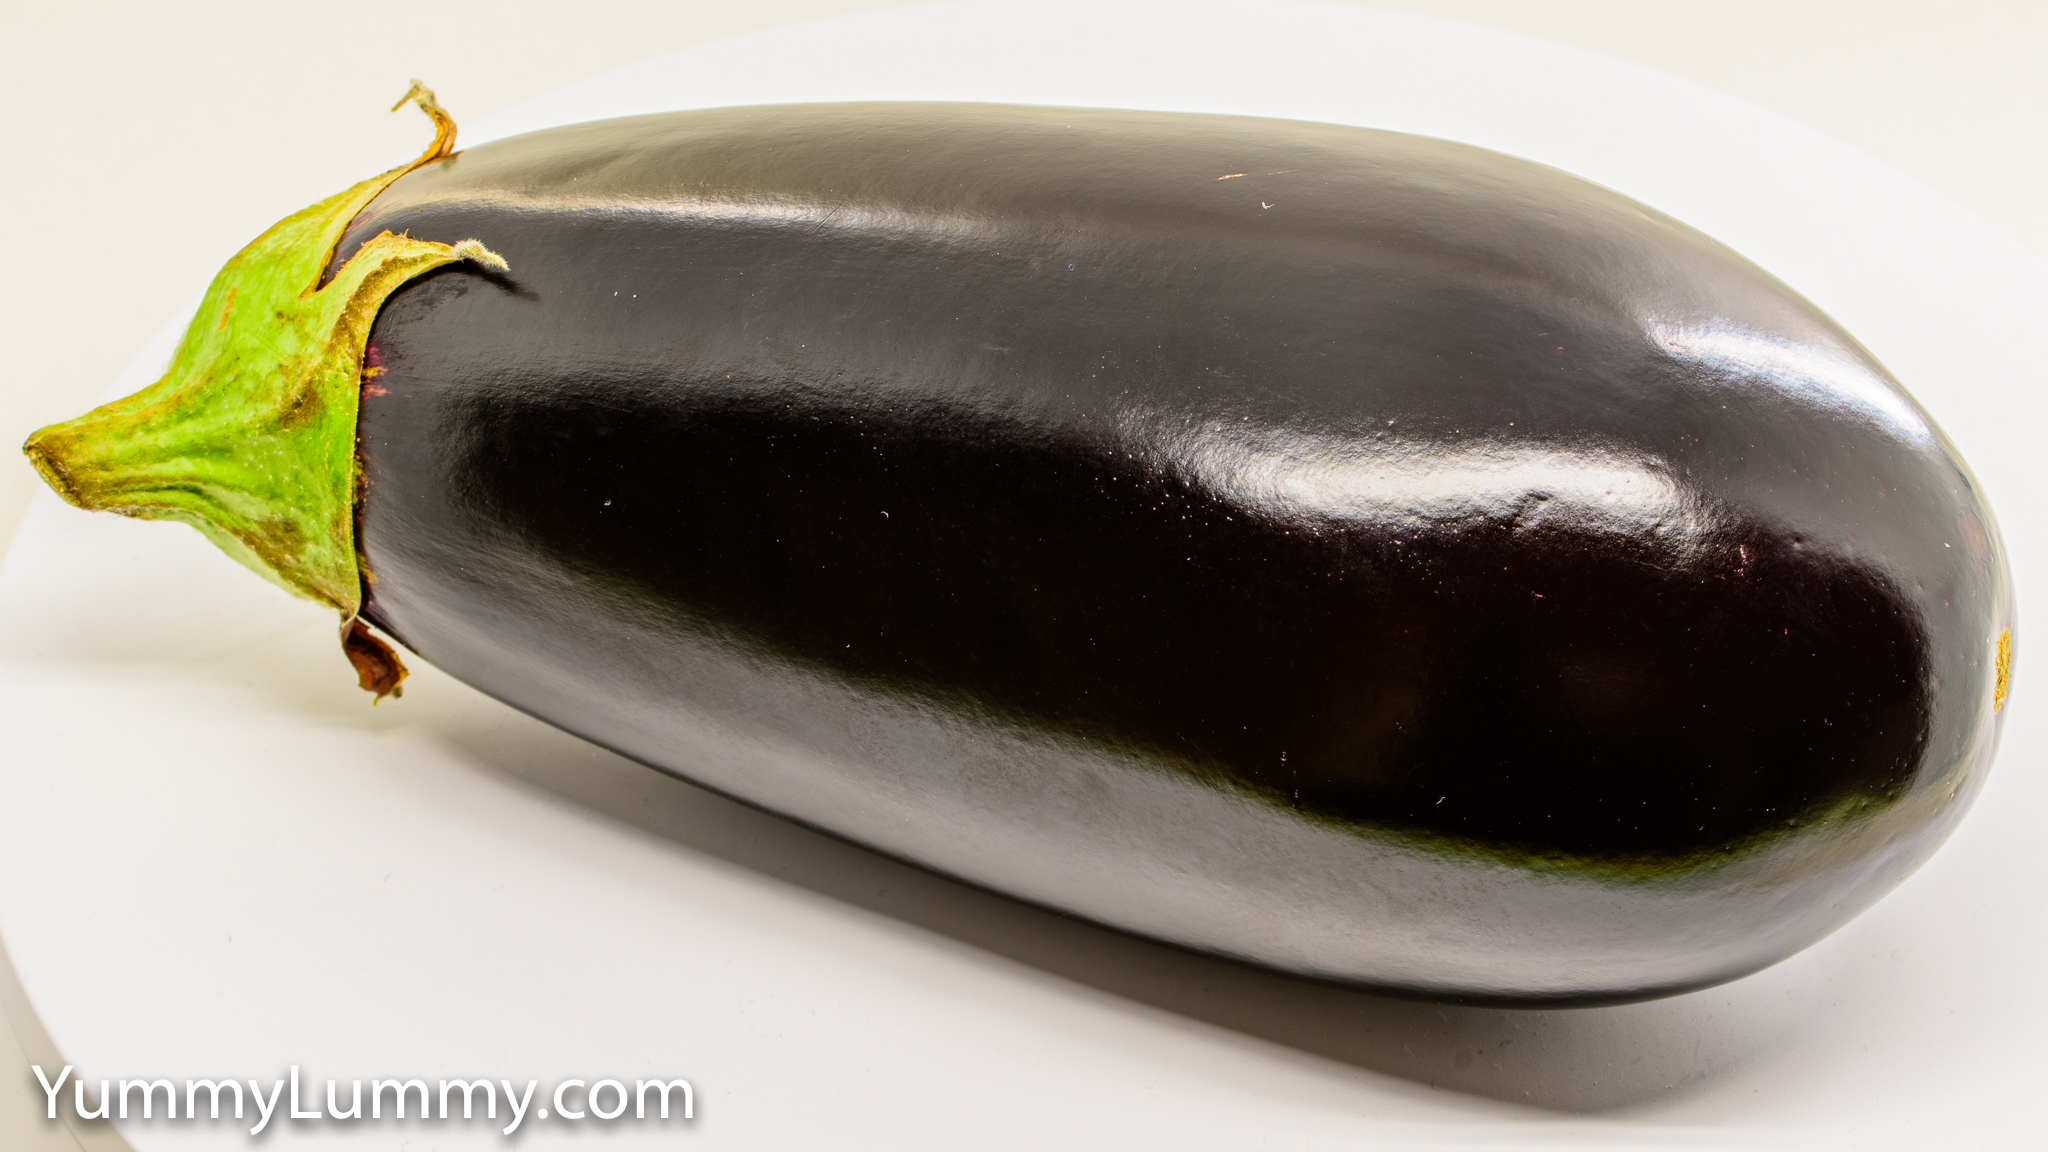 Photograph of an eggplant or aubergine or the 🍆 Gary Lum